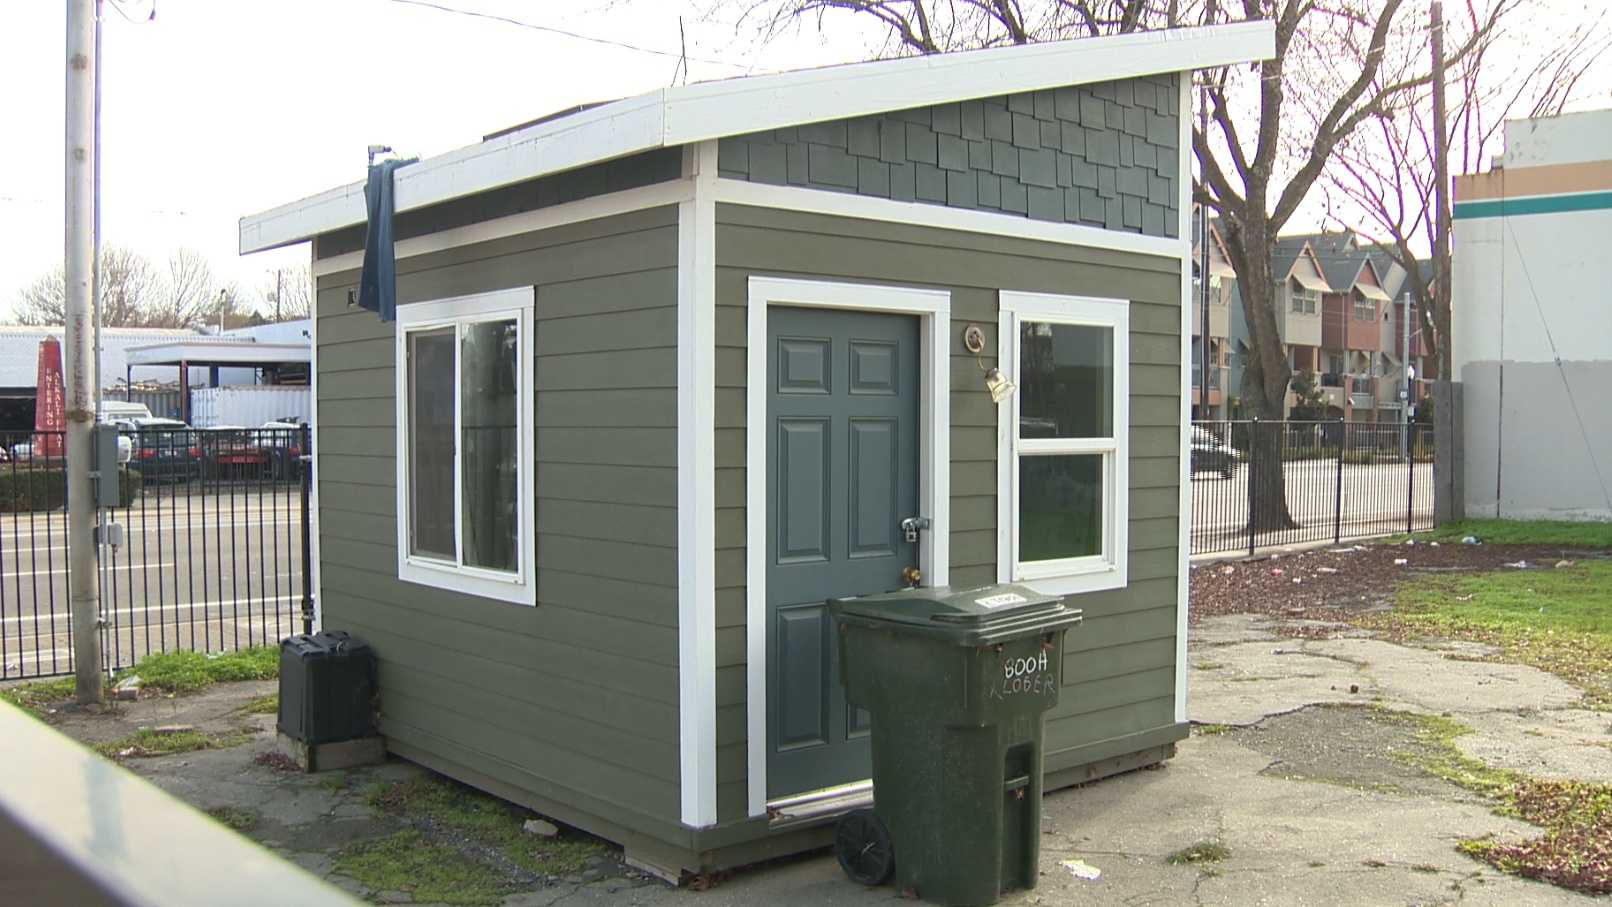 A cabin like this one could help Sacramento's homeless population until they can find a more permanent housing solution.